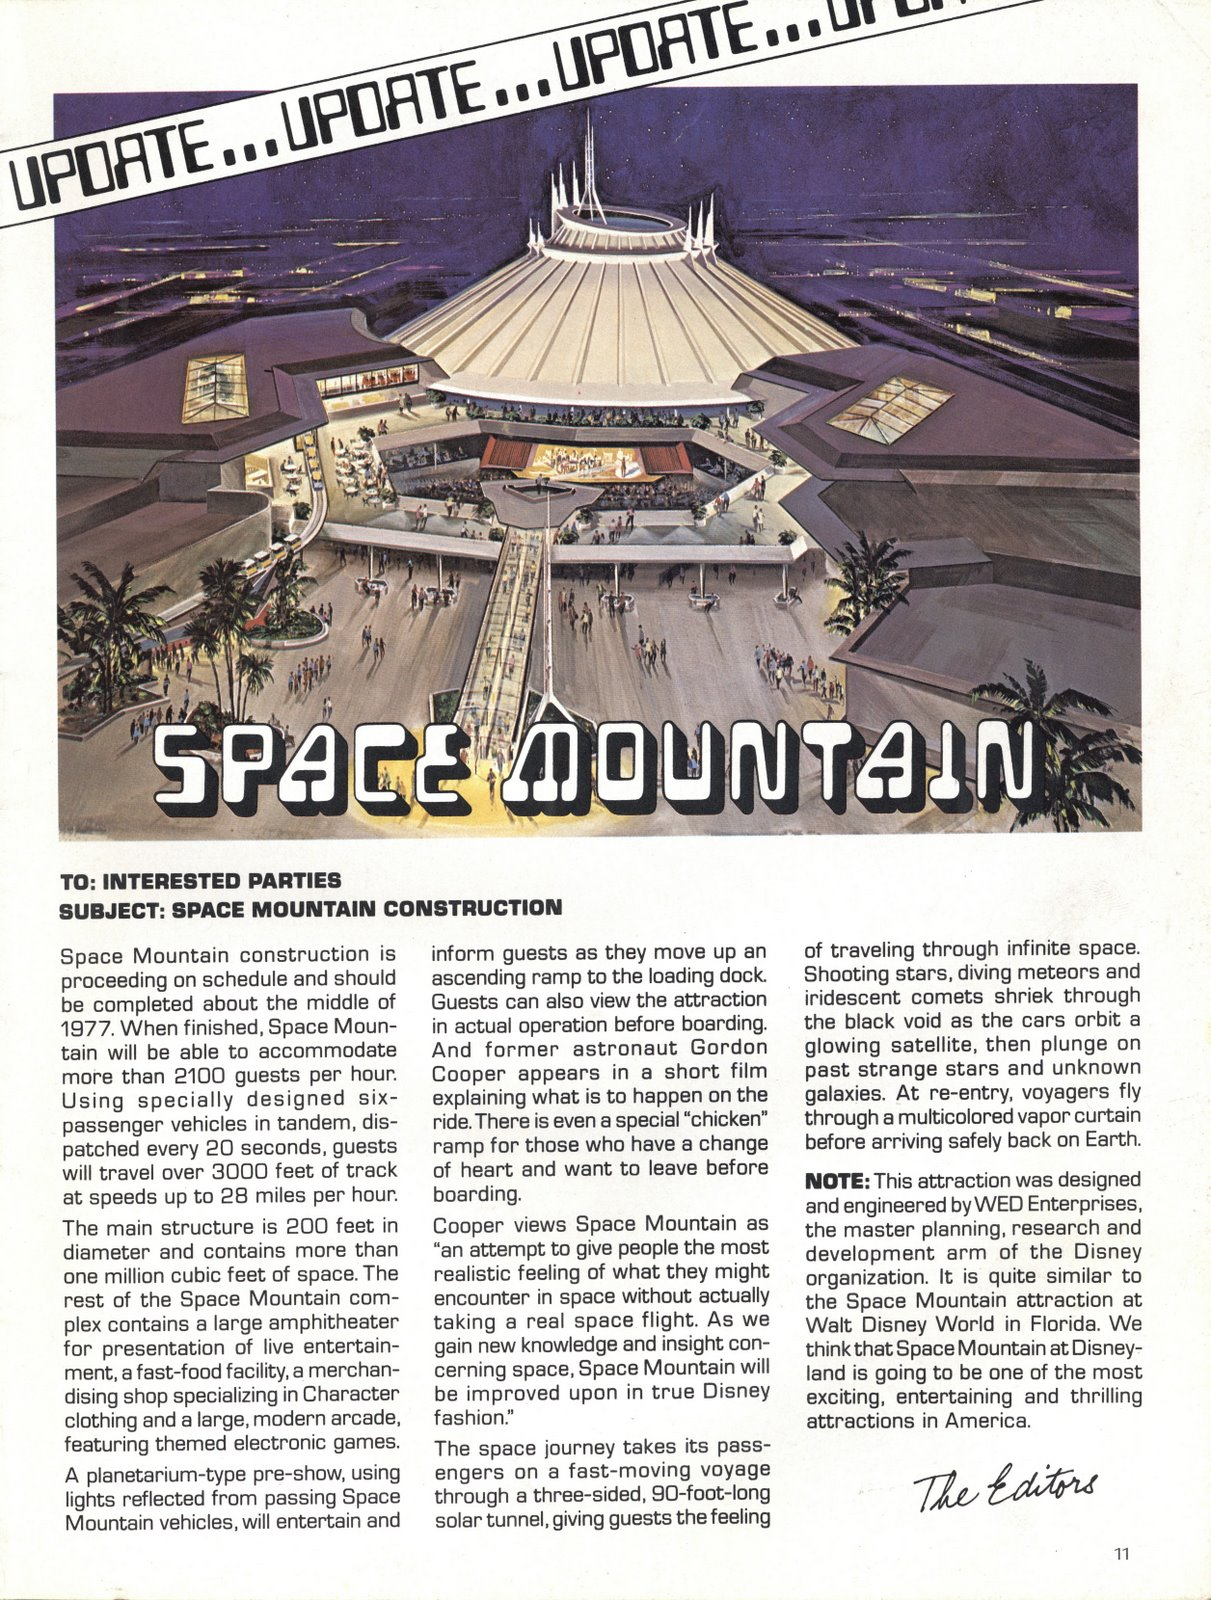 1970's Disneyland Space Mountain Construction Advertisement